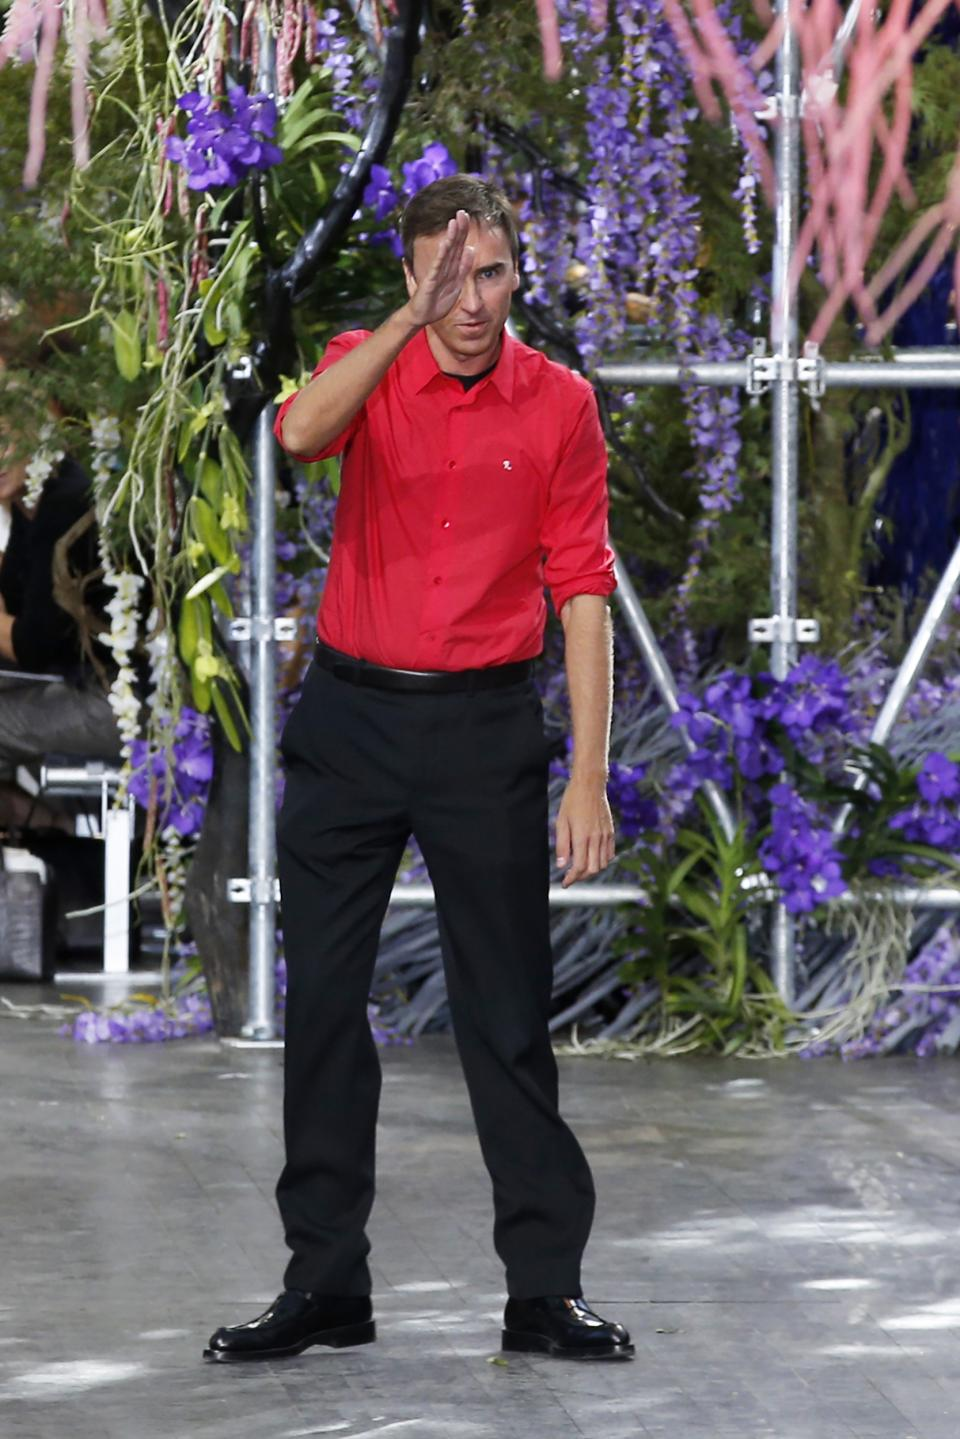 Fashion designer Raf Simons acknowledges applause following the presentation of the ready-to-wear Spring/Summer 2014 fashion collection he designed for Christian Dior, Friday, Sept. 27, 2013 in Paris. (AP Photo/Christophe Ena)